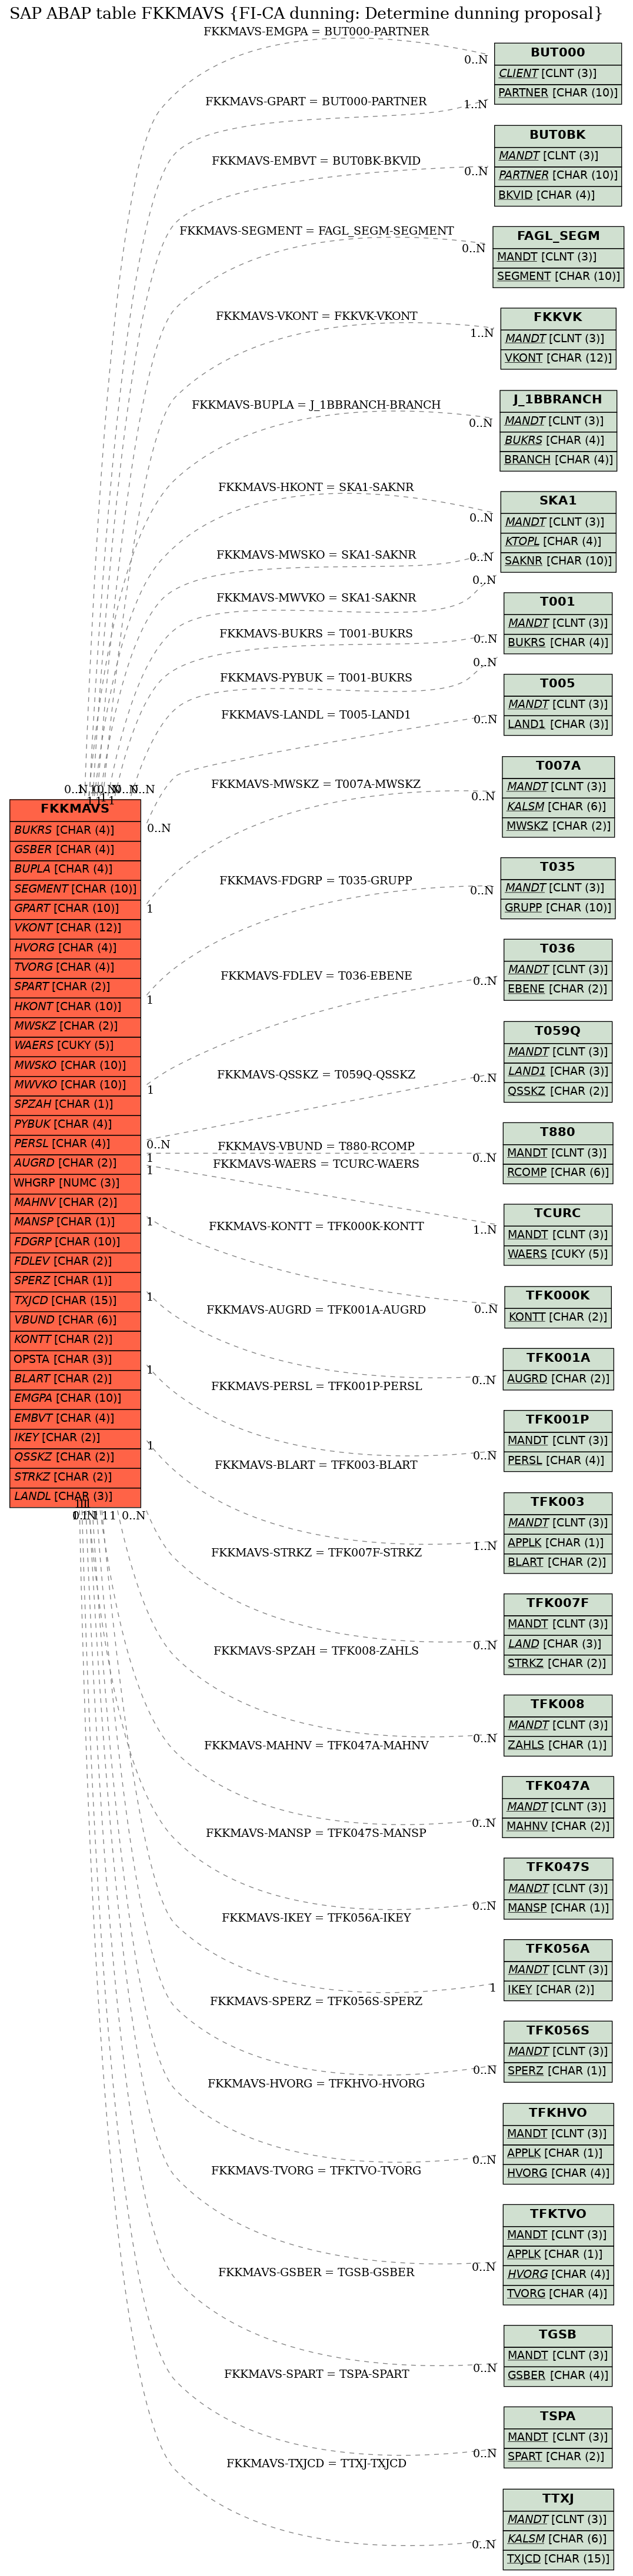 E-R Diagram for table FKKMAVS (FI-CA dunning: Determine dunning proposal)